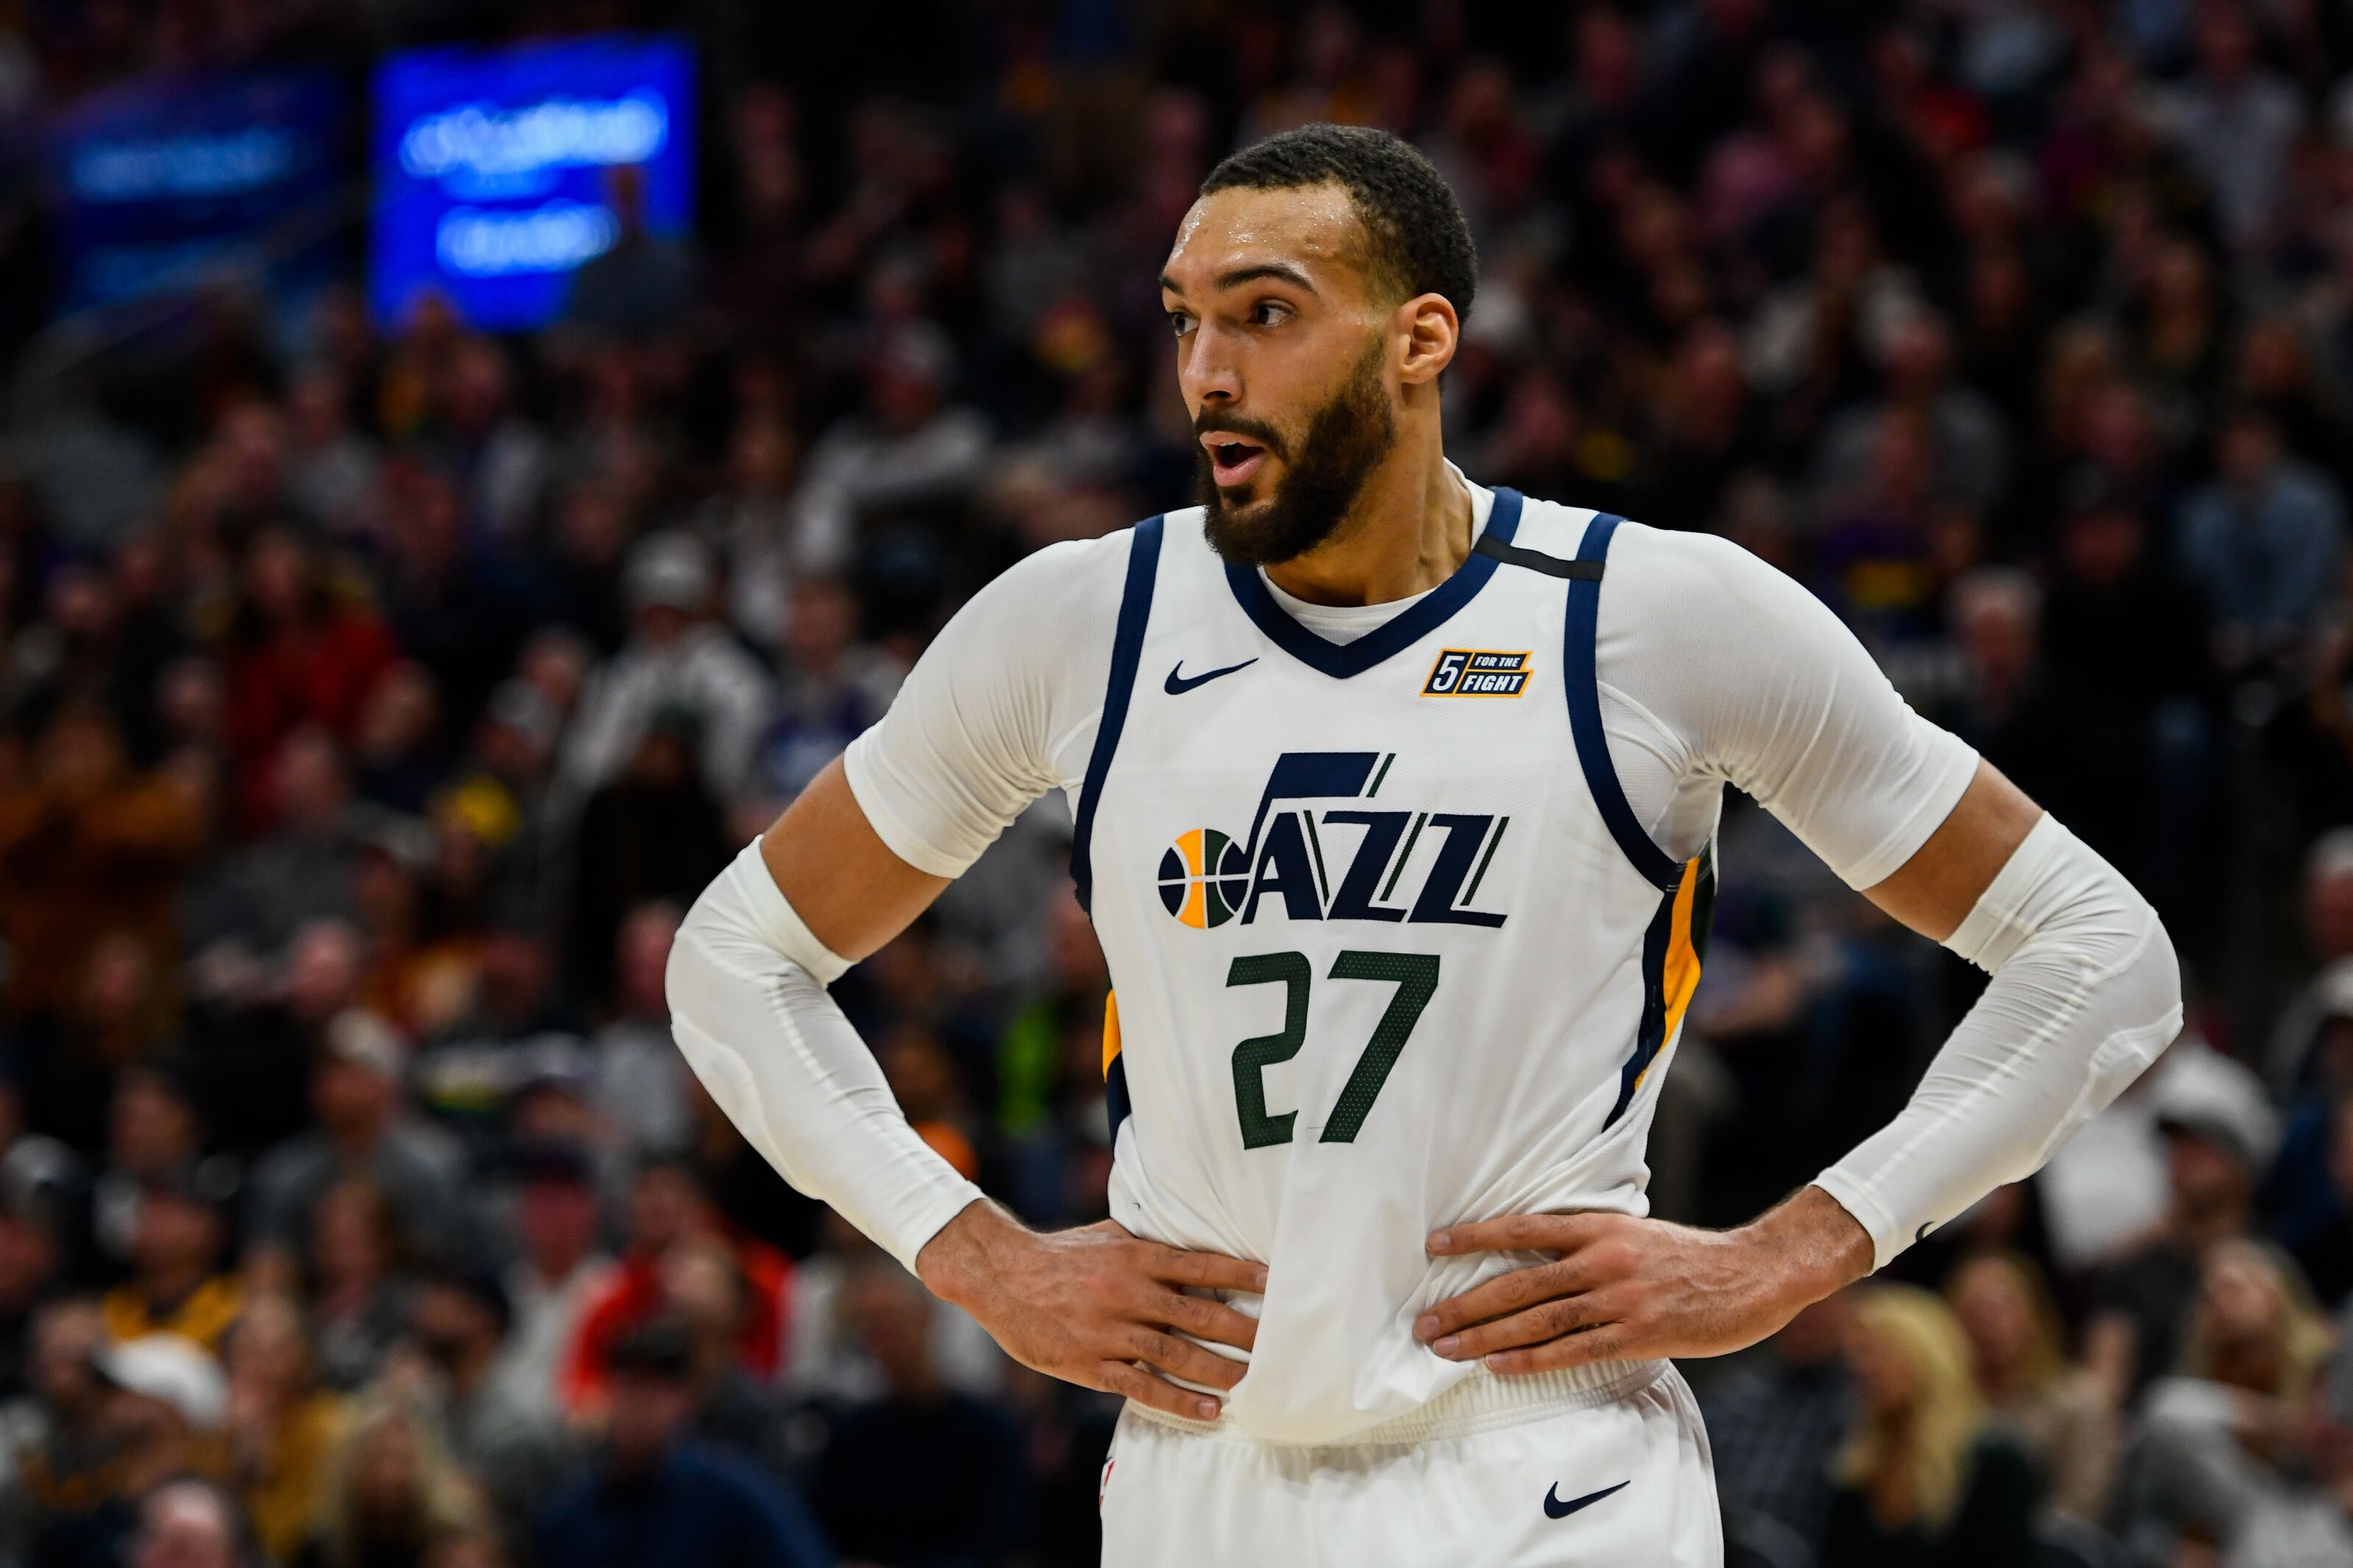 Utah Jazz: Rudy Gobert's All-Star case is clear as day